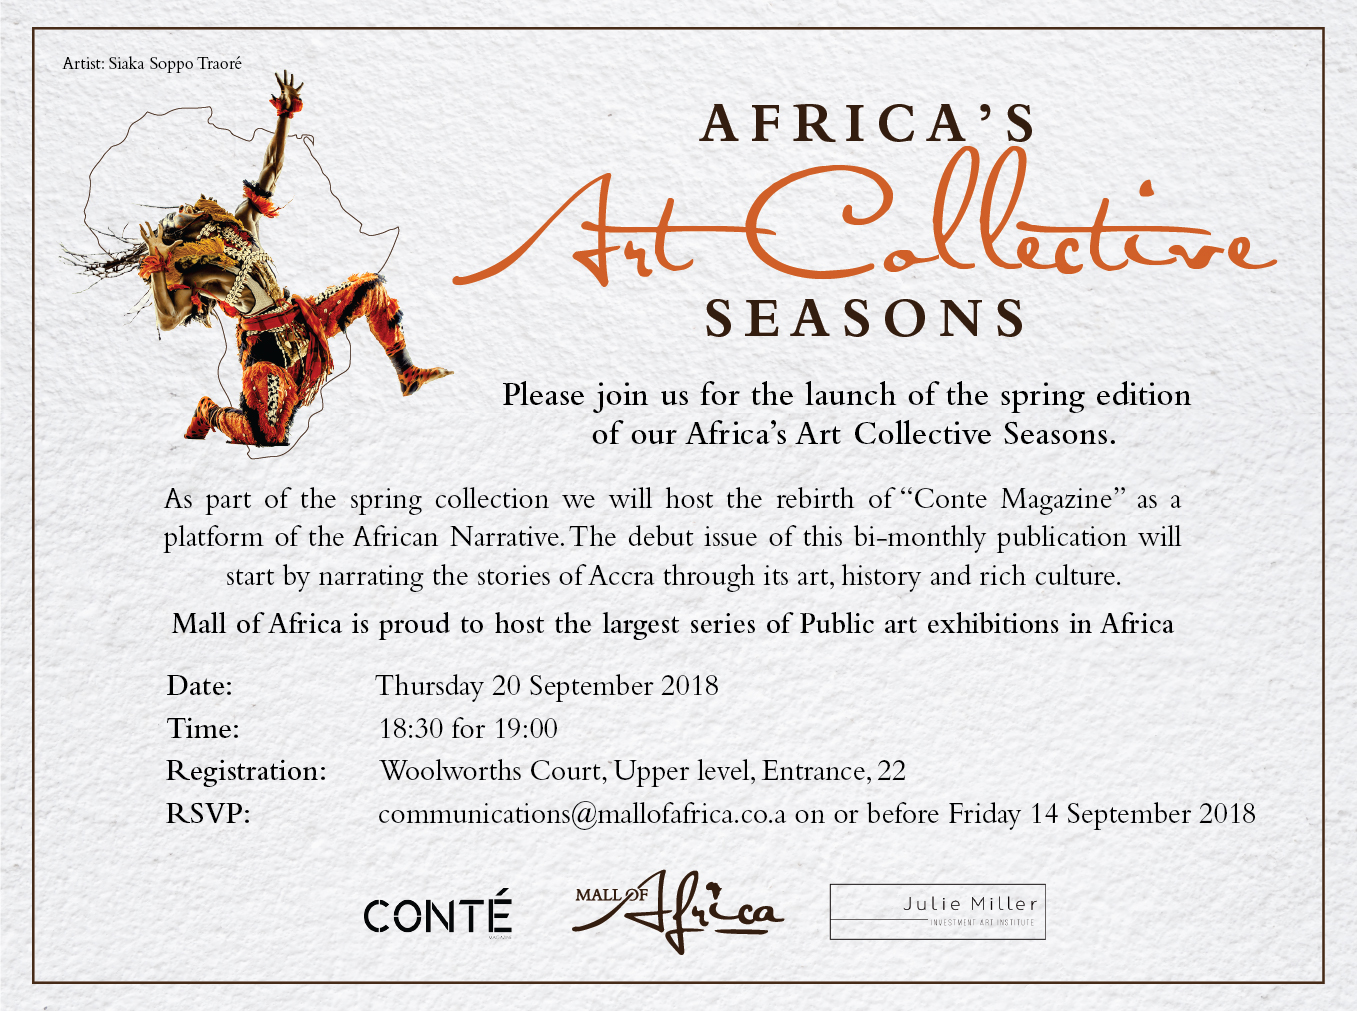 Seasons Spring Edition Art Collection at Mall of Africa